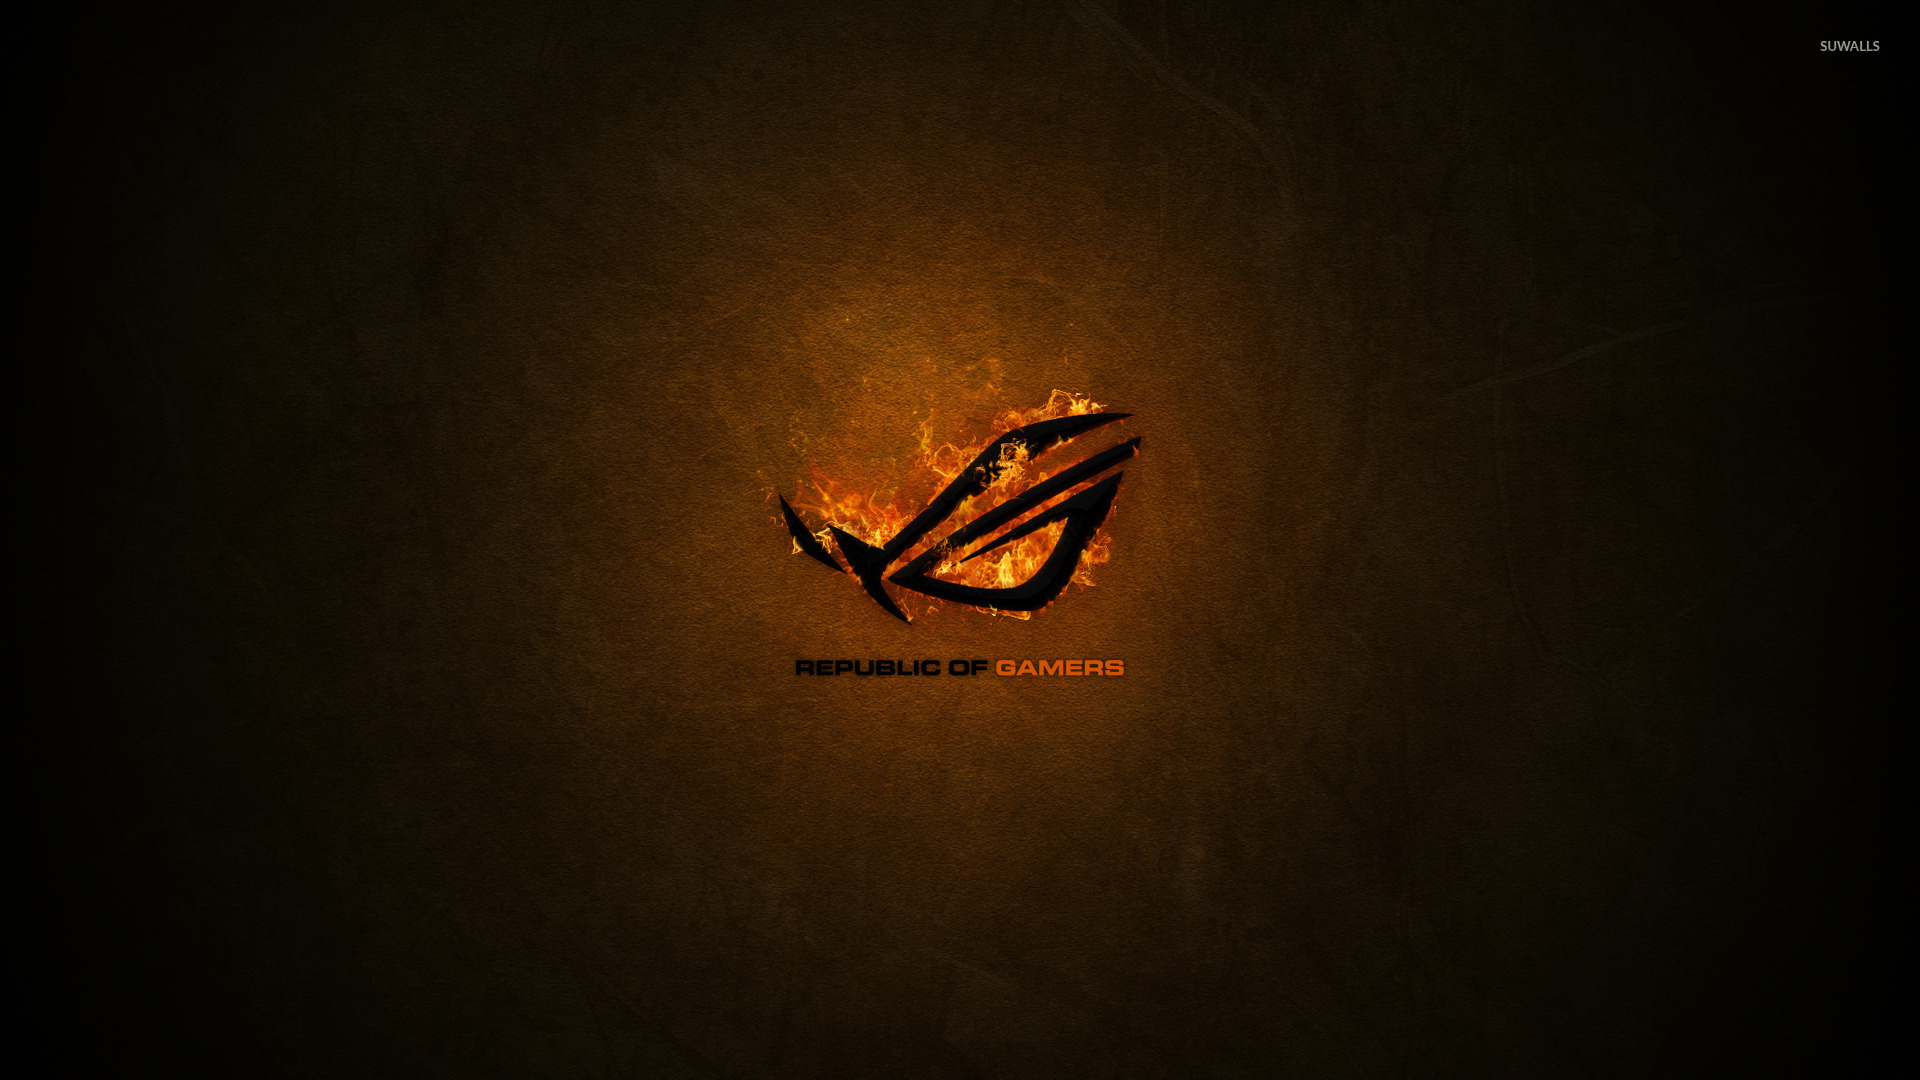 Asus RoG wallpaper   Computer wallpapers   15787 1366x768